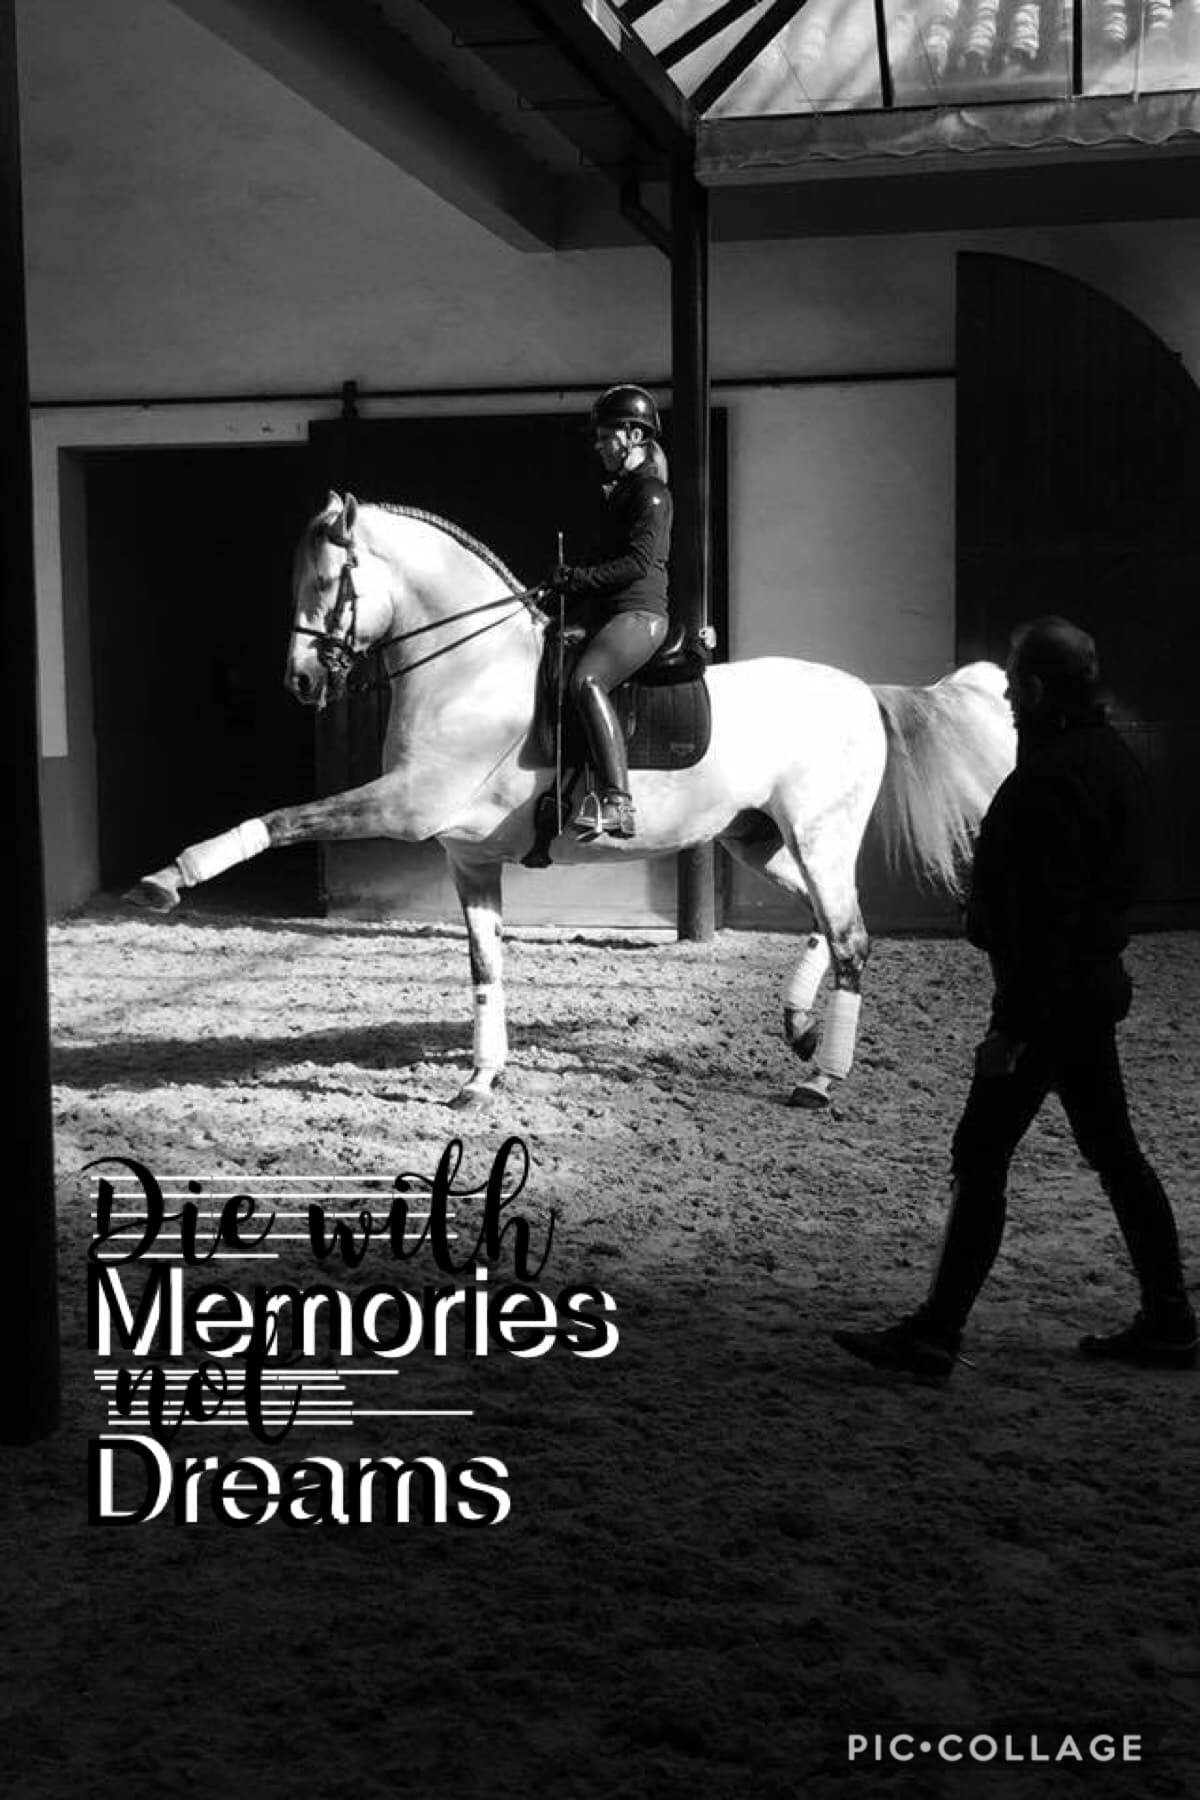 """•tap•  """"Die with memories, not dreams"""" ♥️♥️♥️♥️♥️♥️♥️♥️   Anyone have suggestions on how to improve your acc??  ♥️♥️♥️♥️♥️♥️♥️♥️ Thank you all for being amazing!"""